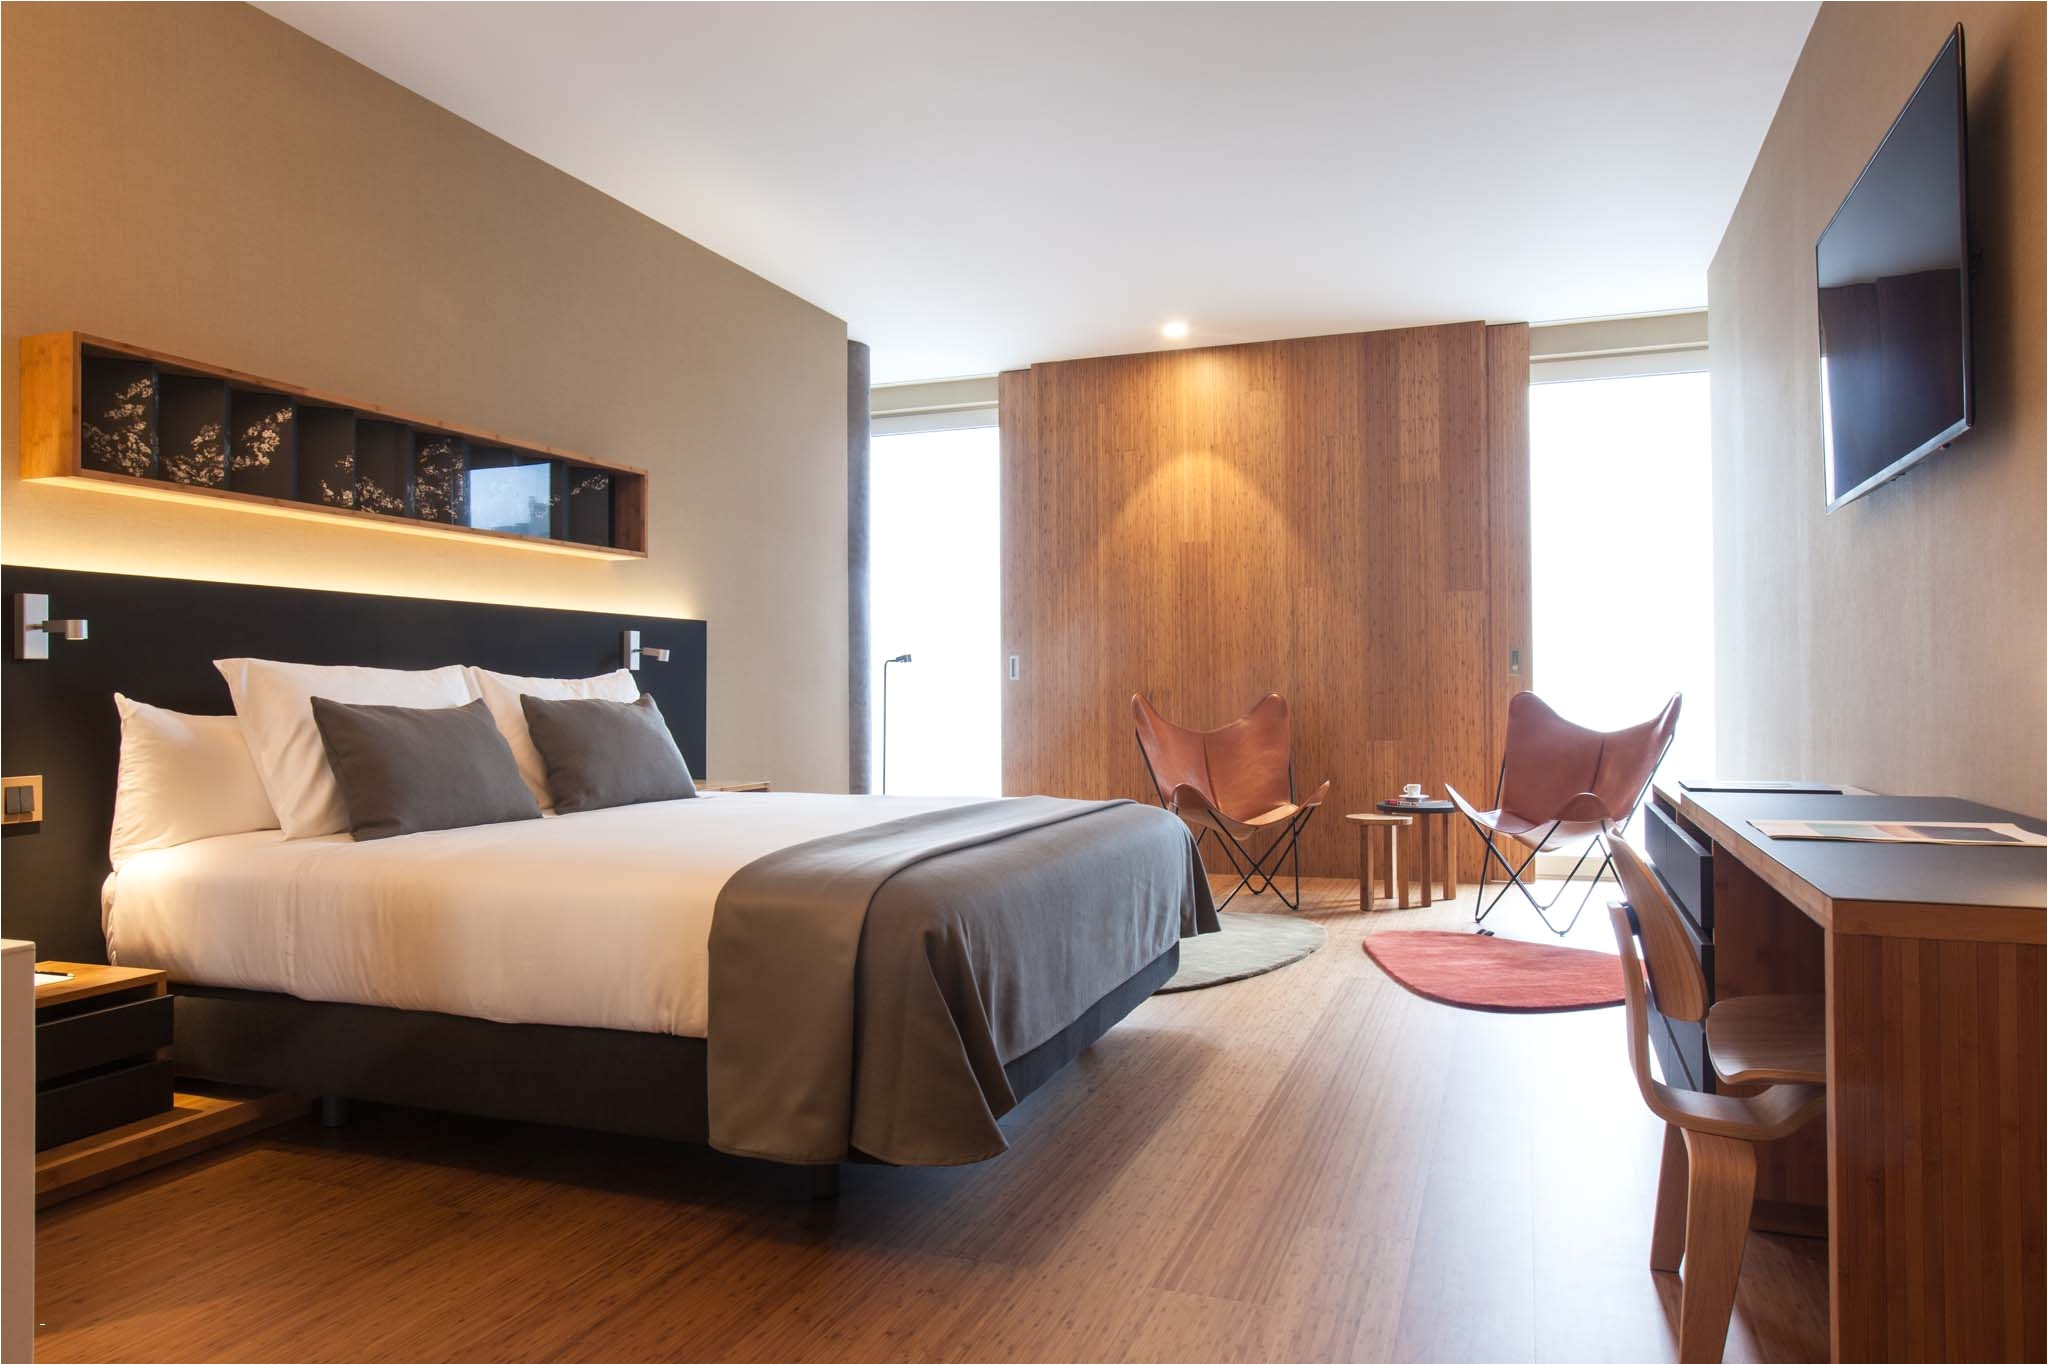 Best 2 Bedroom Hotels In orlando Home Designs 2 Bedroom House Collection for Marvelous Best Of 2